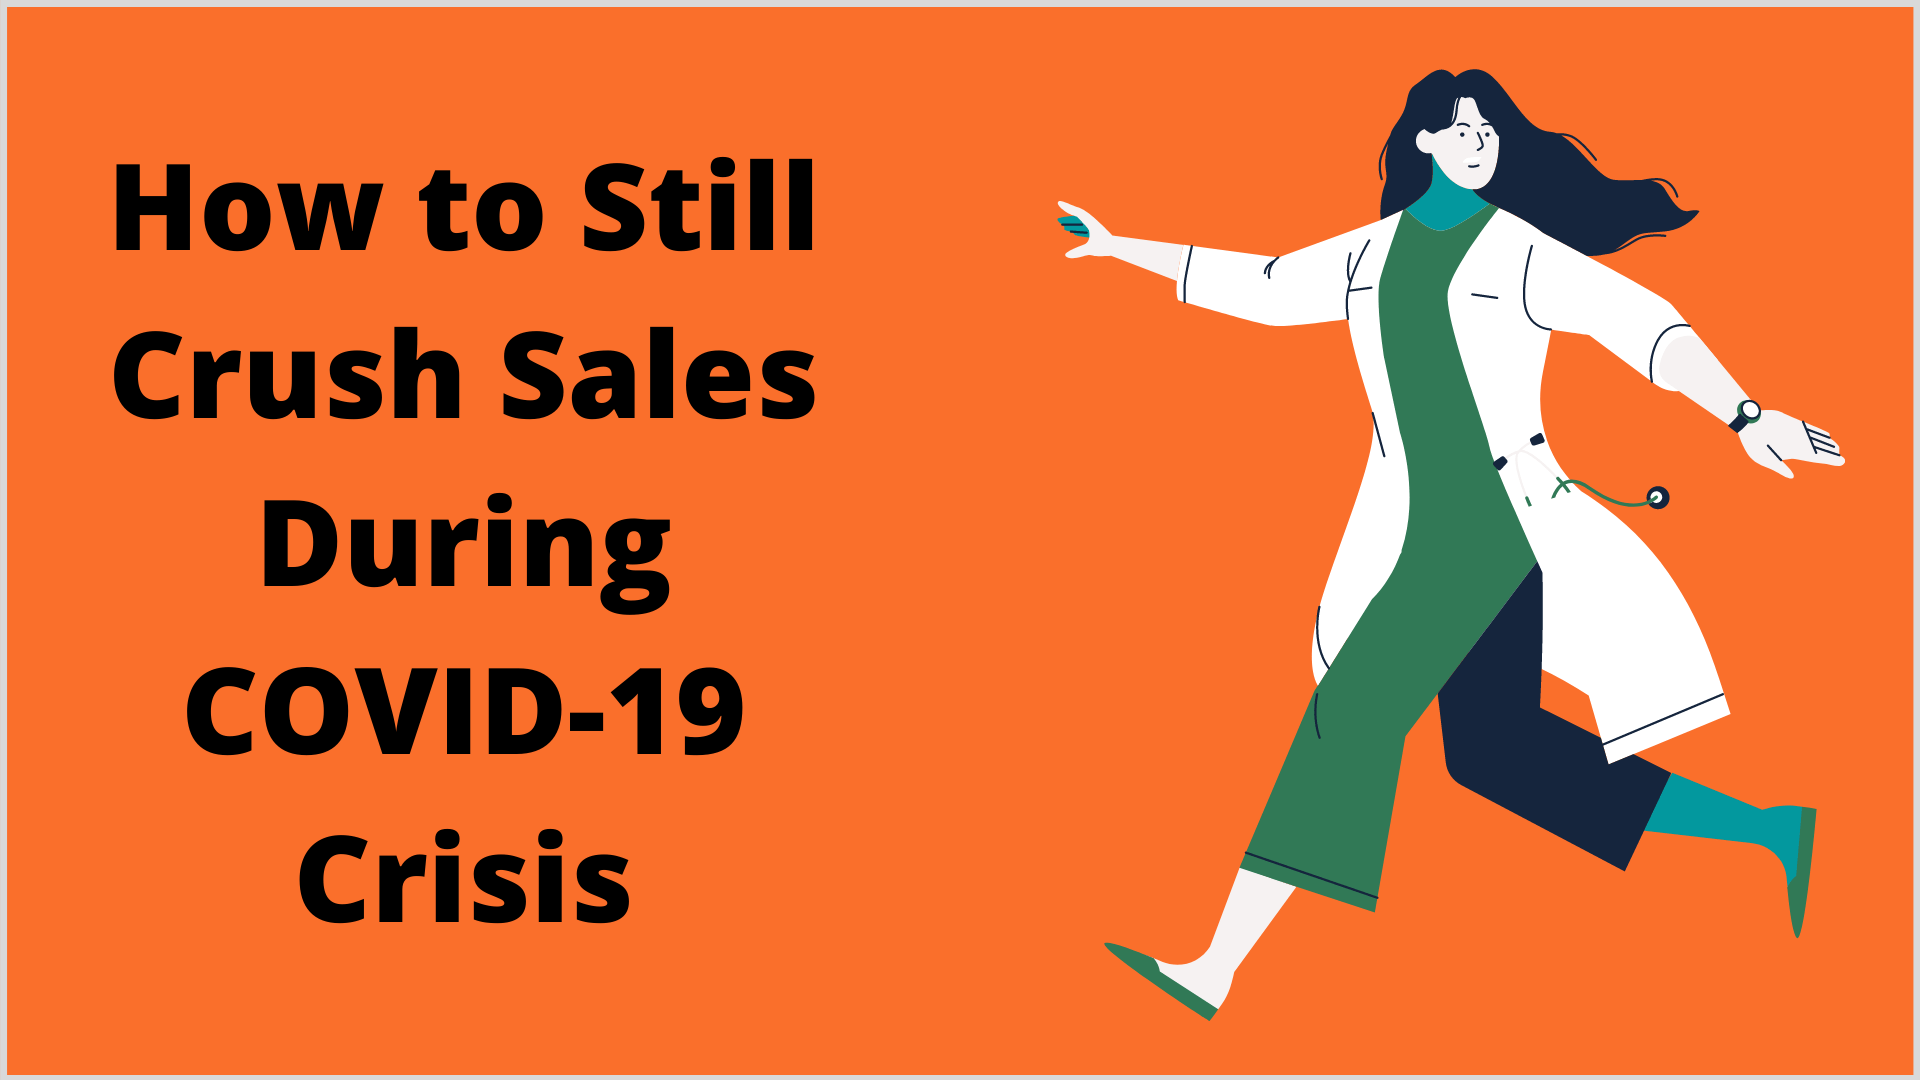 How to Crush Sales During COVID-19 (Digital Products)